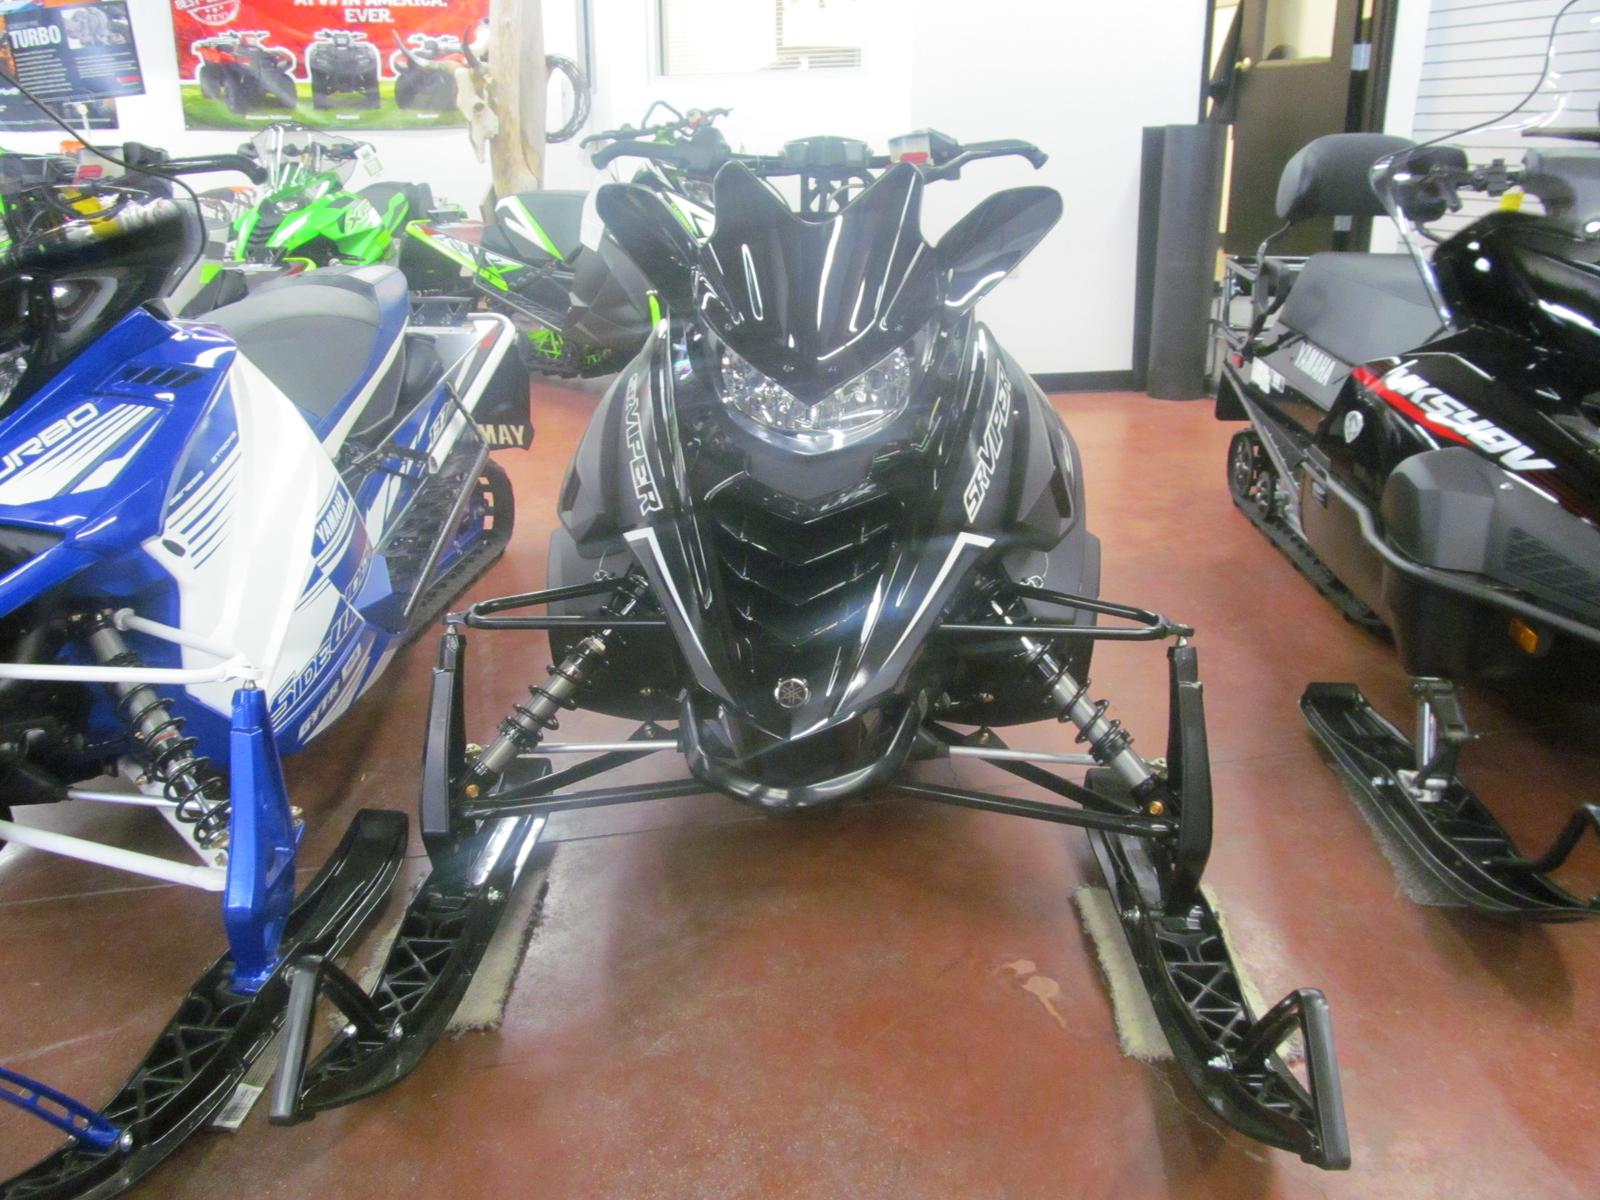 Inventory from Husqvarna and Yamaha CENTRAL MOTOR SPORTS